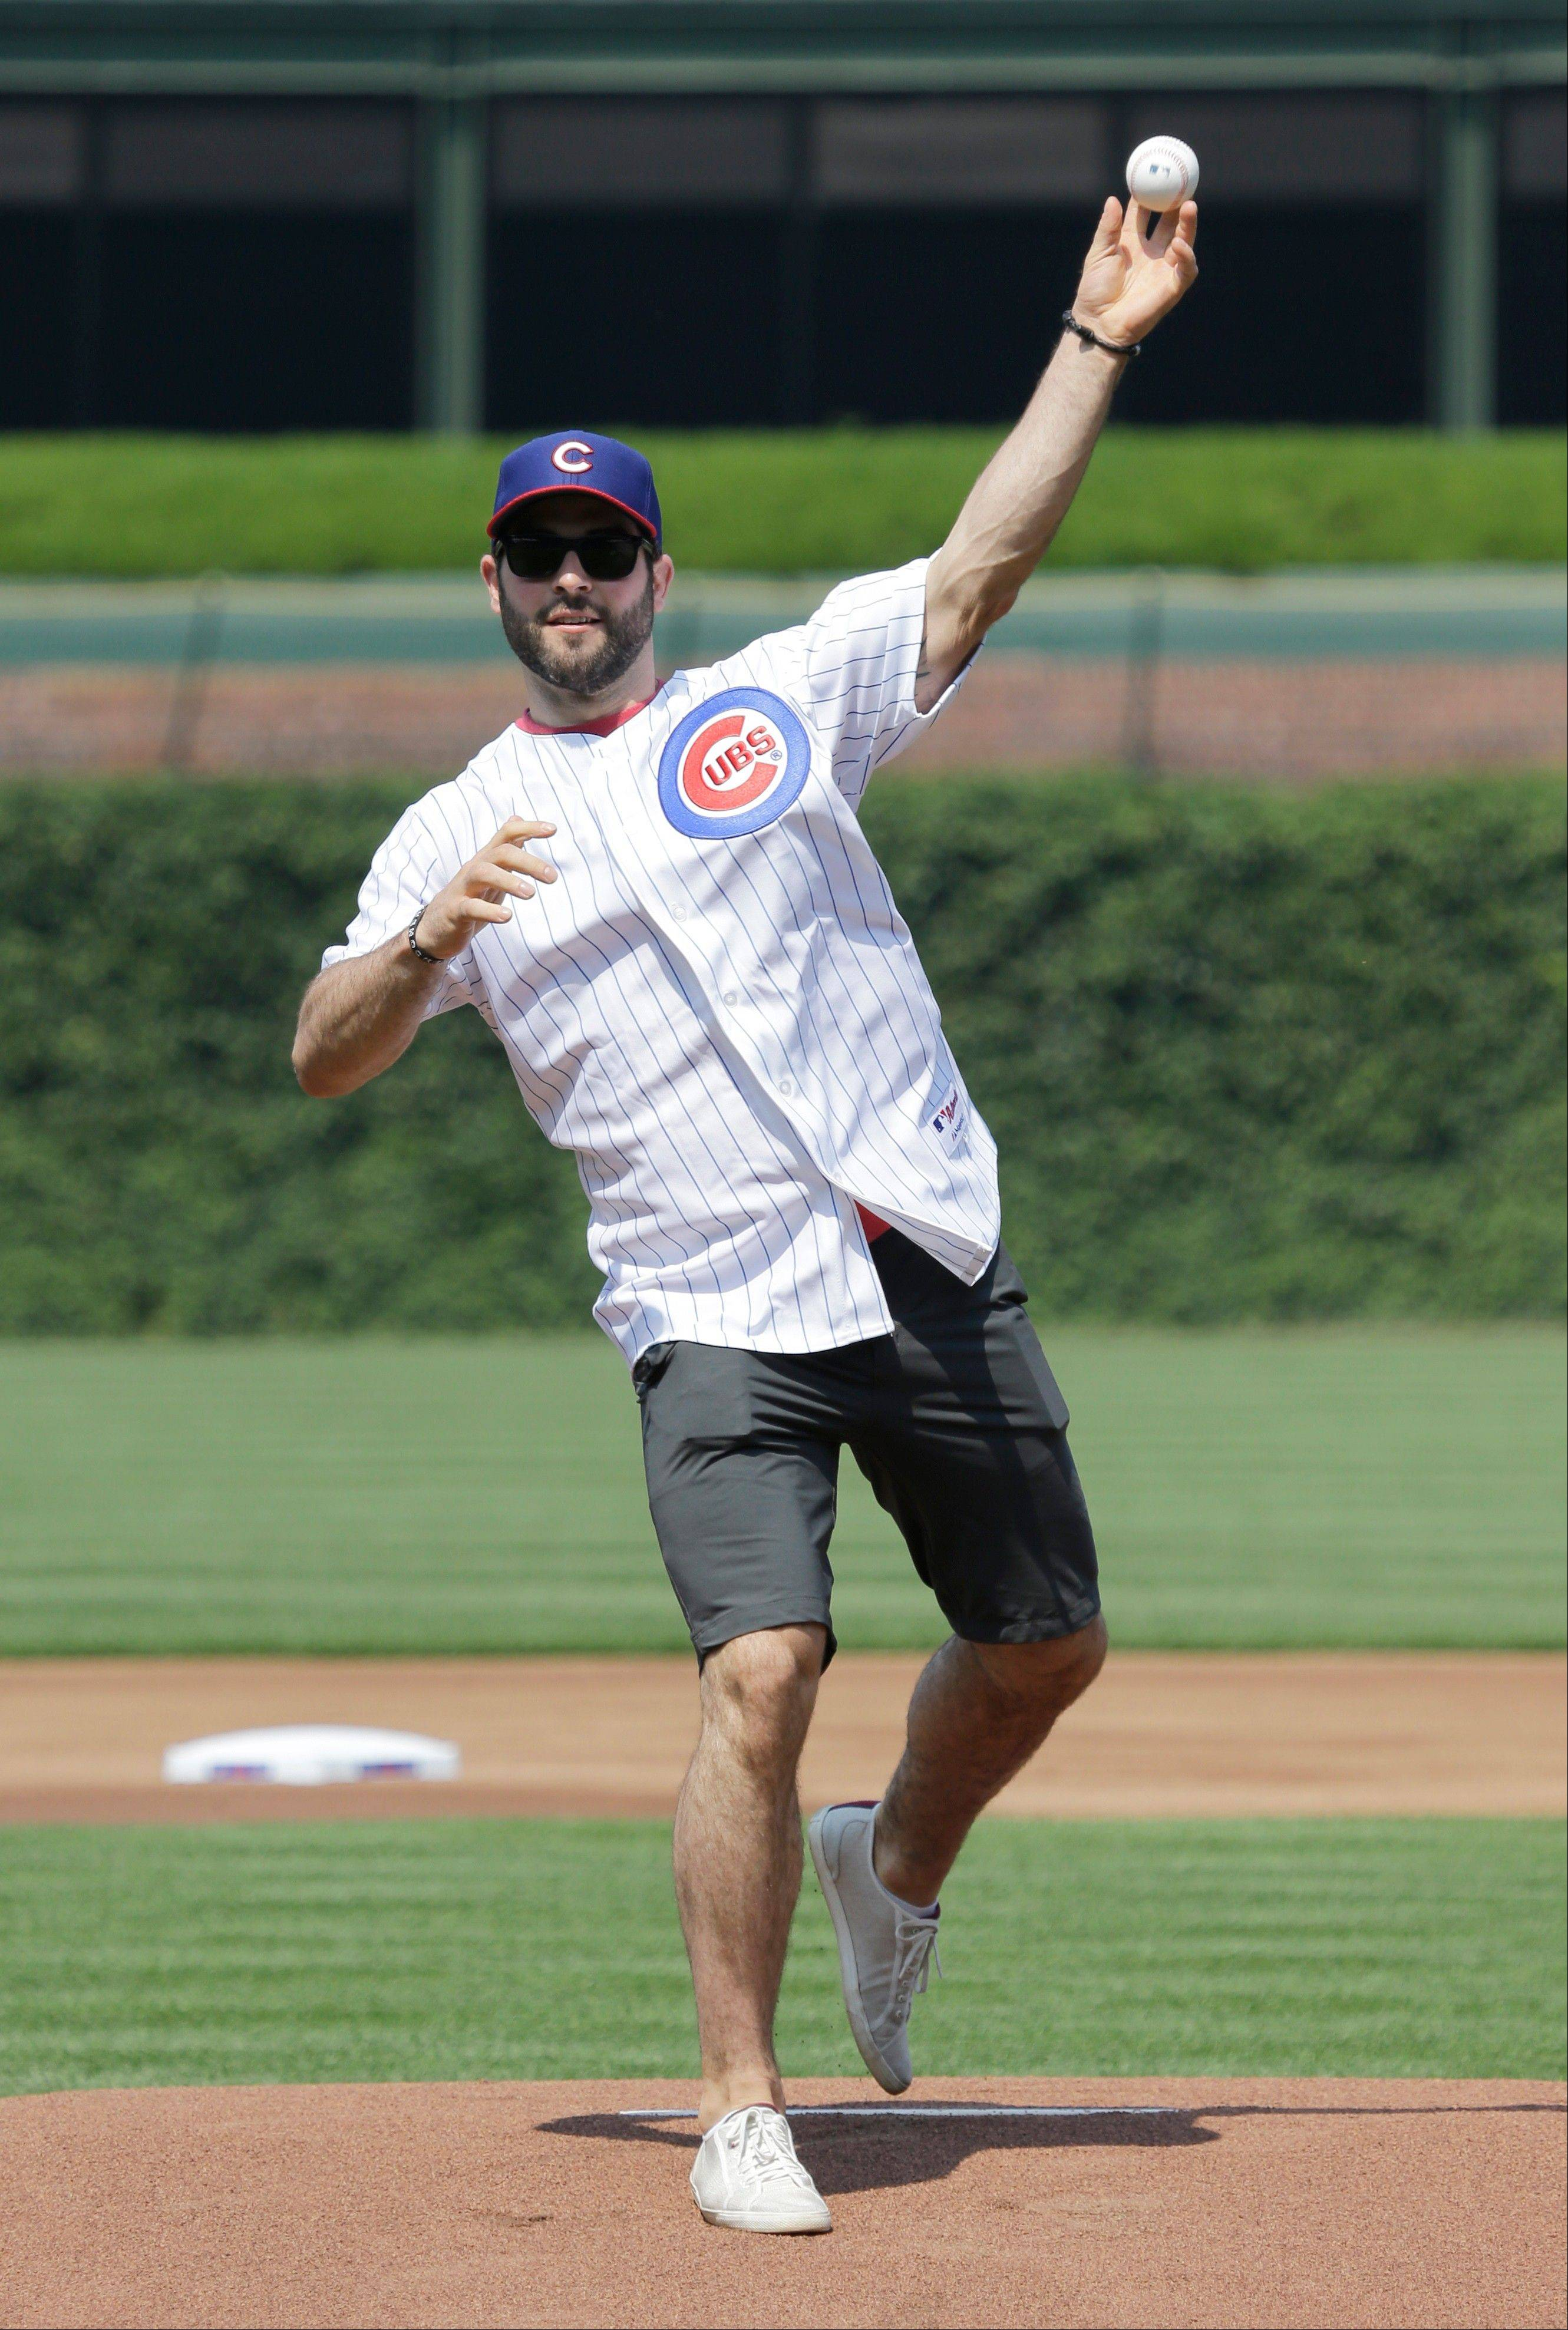 Hawks' Bickell, Bollig enjoy some fun at the old ballpark